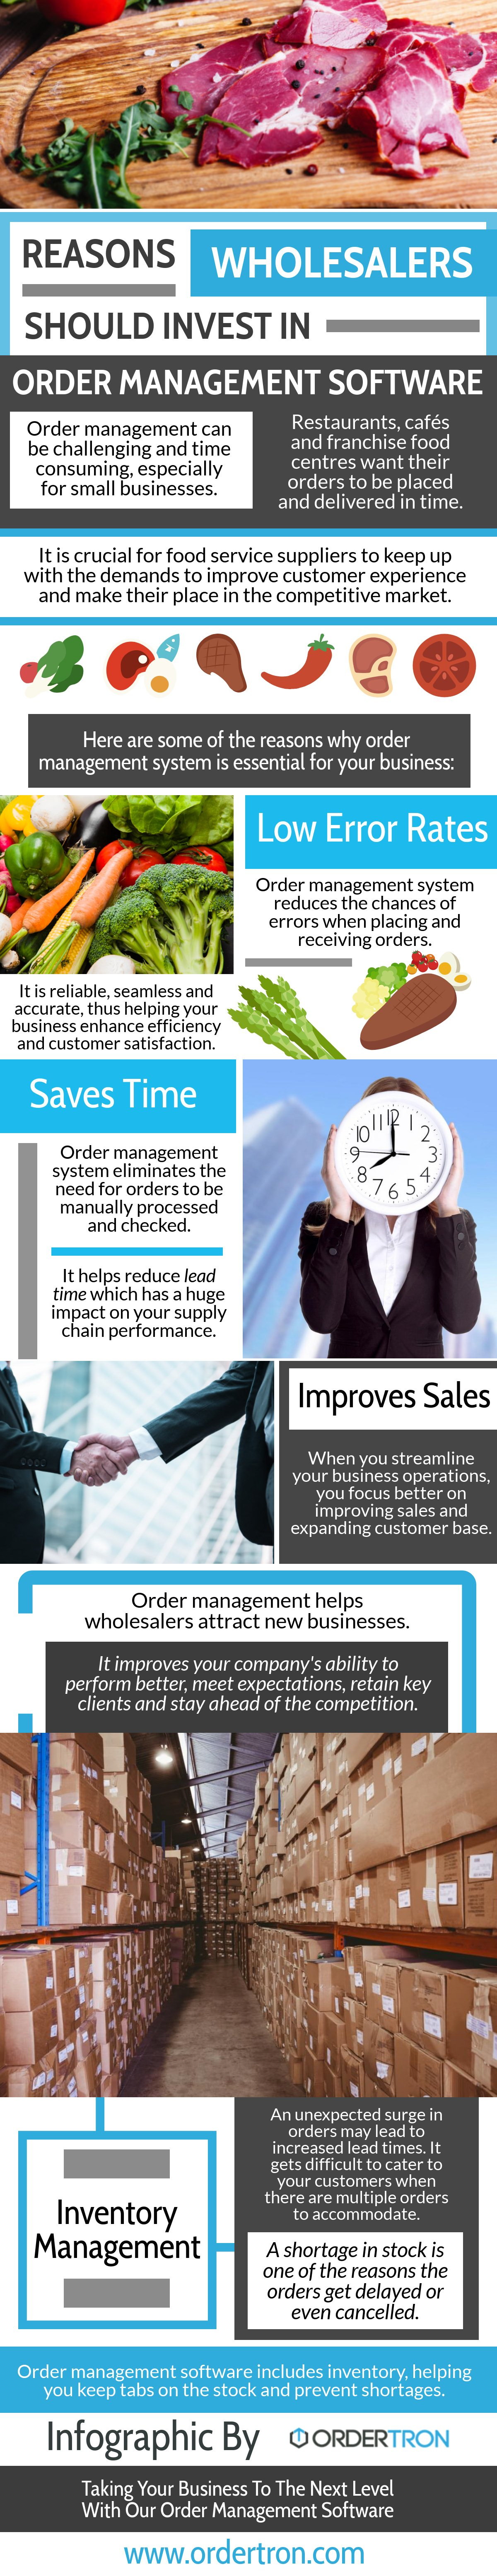 Reasons Whole Salers Should Invest in Order Management Software